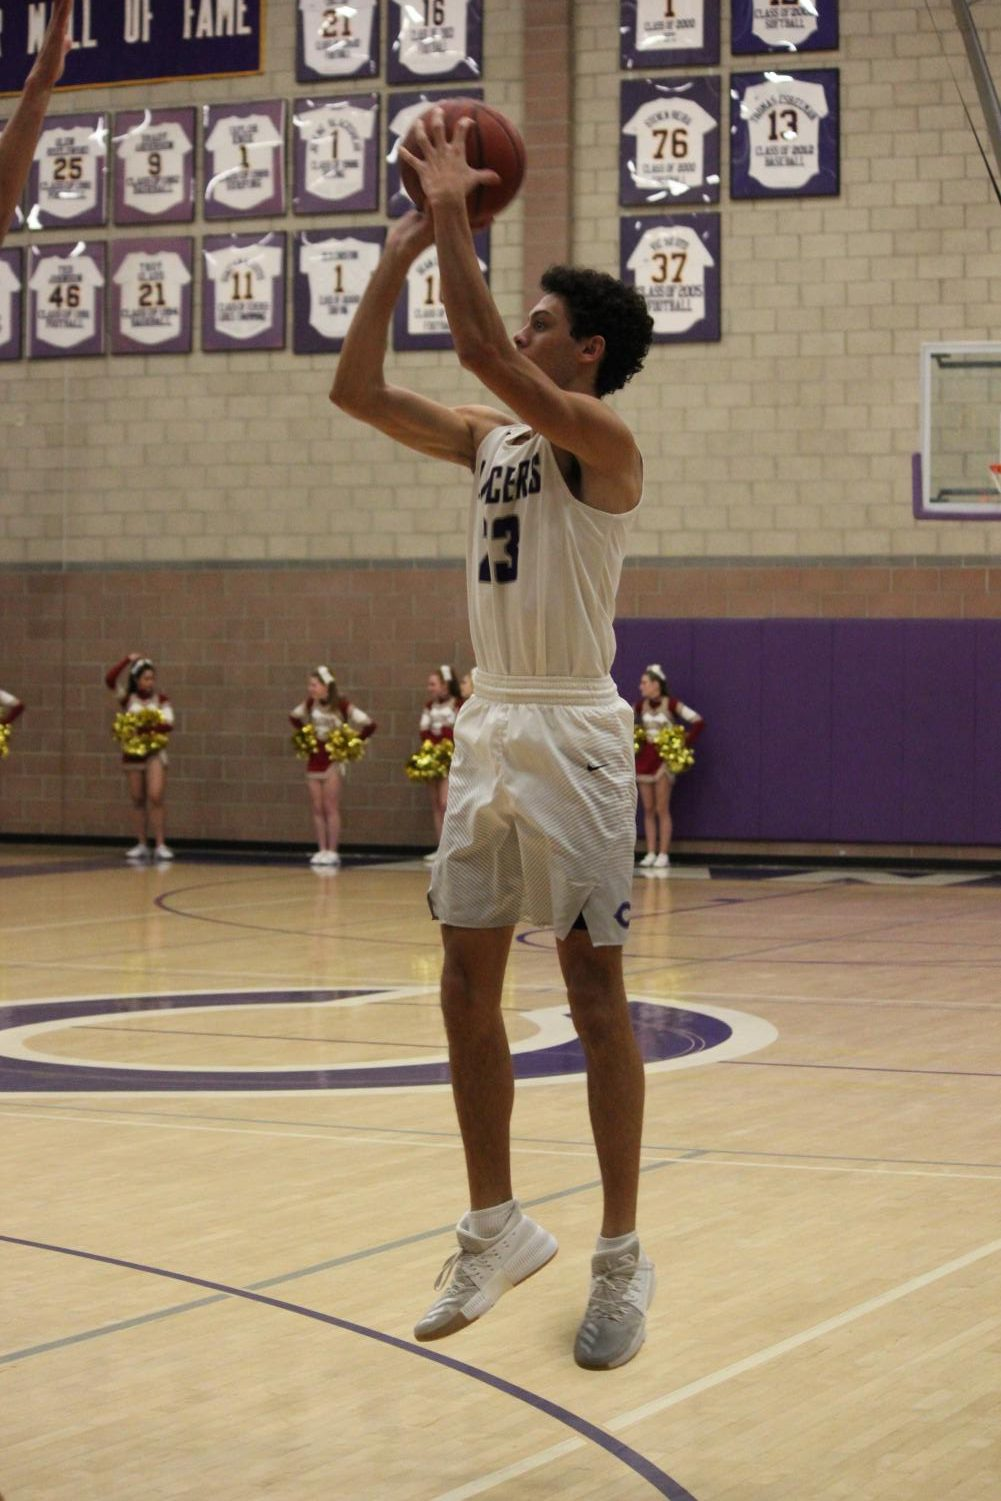 Senior Carter Plousha goes up for the shot. The Lancers are 24-6 on the season and play Bonita Vista on Feb. 20 at 7 p.m. in the Lancer Arena.